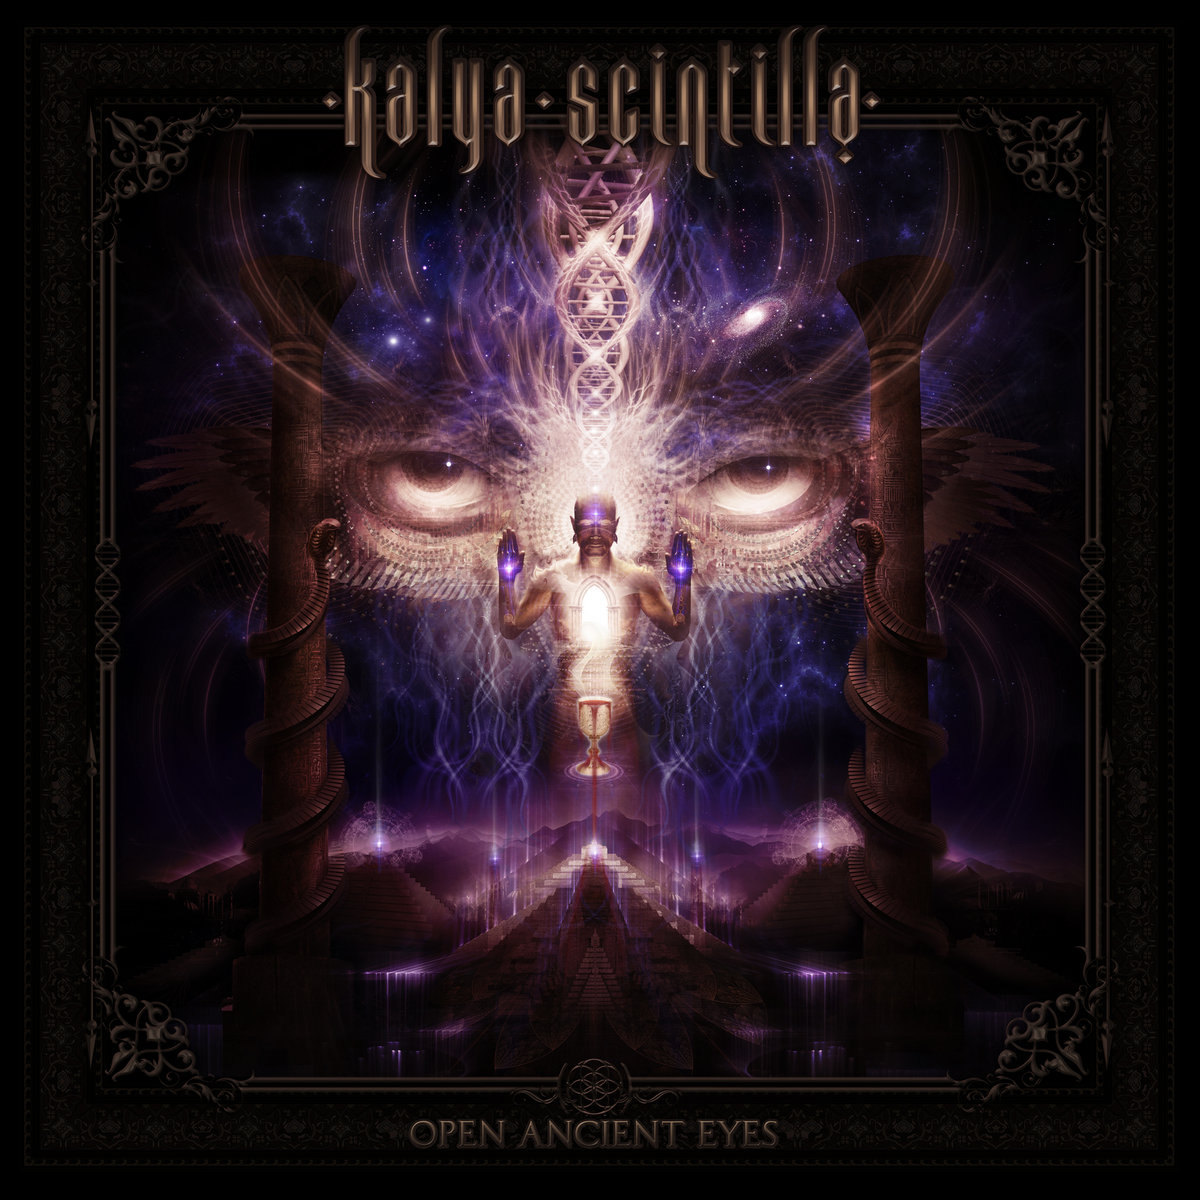 Kalya Scintilla - Osiris @ 'Open Ancient Eyes' album (432hz, electronic)